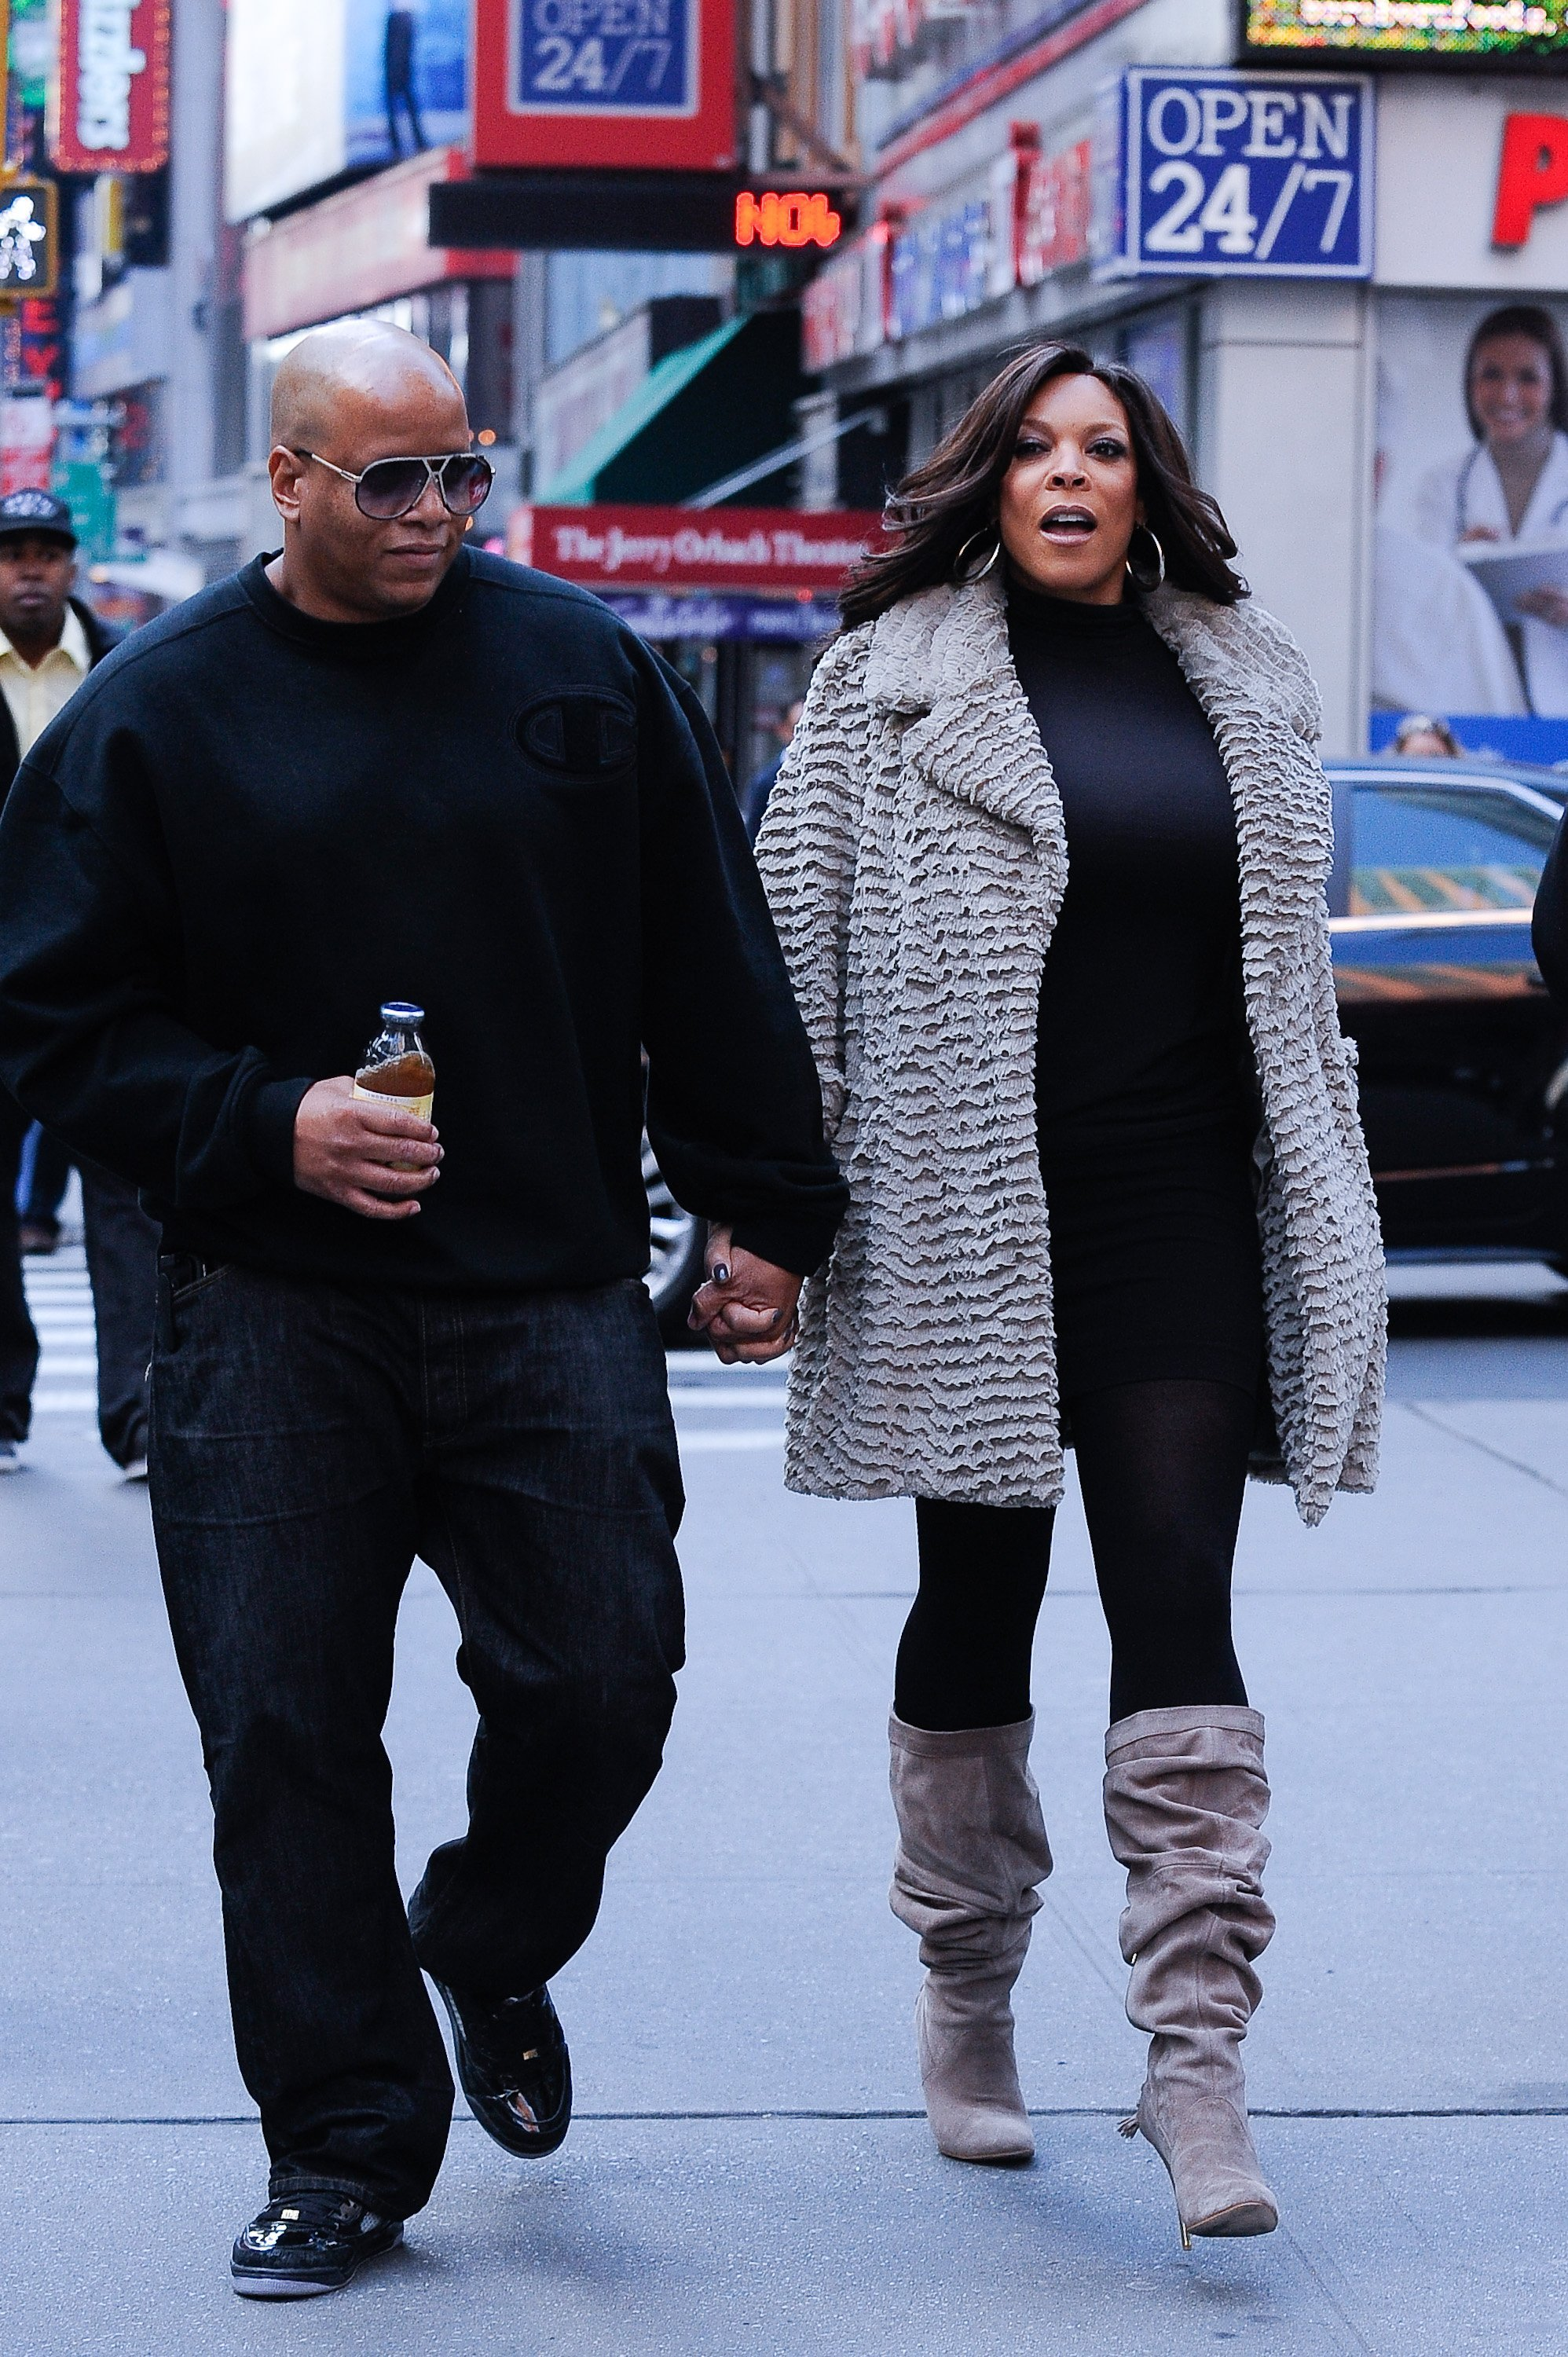 Wendy Williams and Kevin Hunter leave the 'Celebrity Apprentice' film set at Famiglia Restaurant on October 19, 2010. | Photo: GettyImages